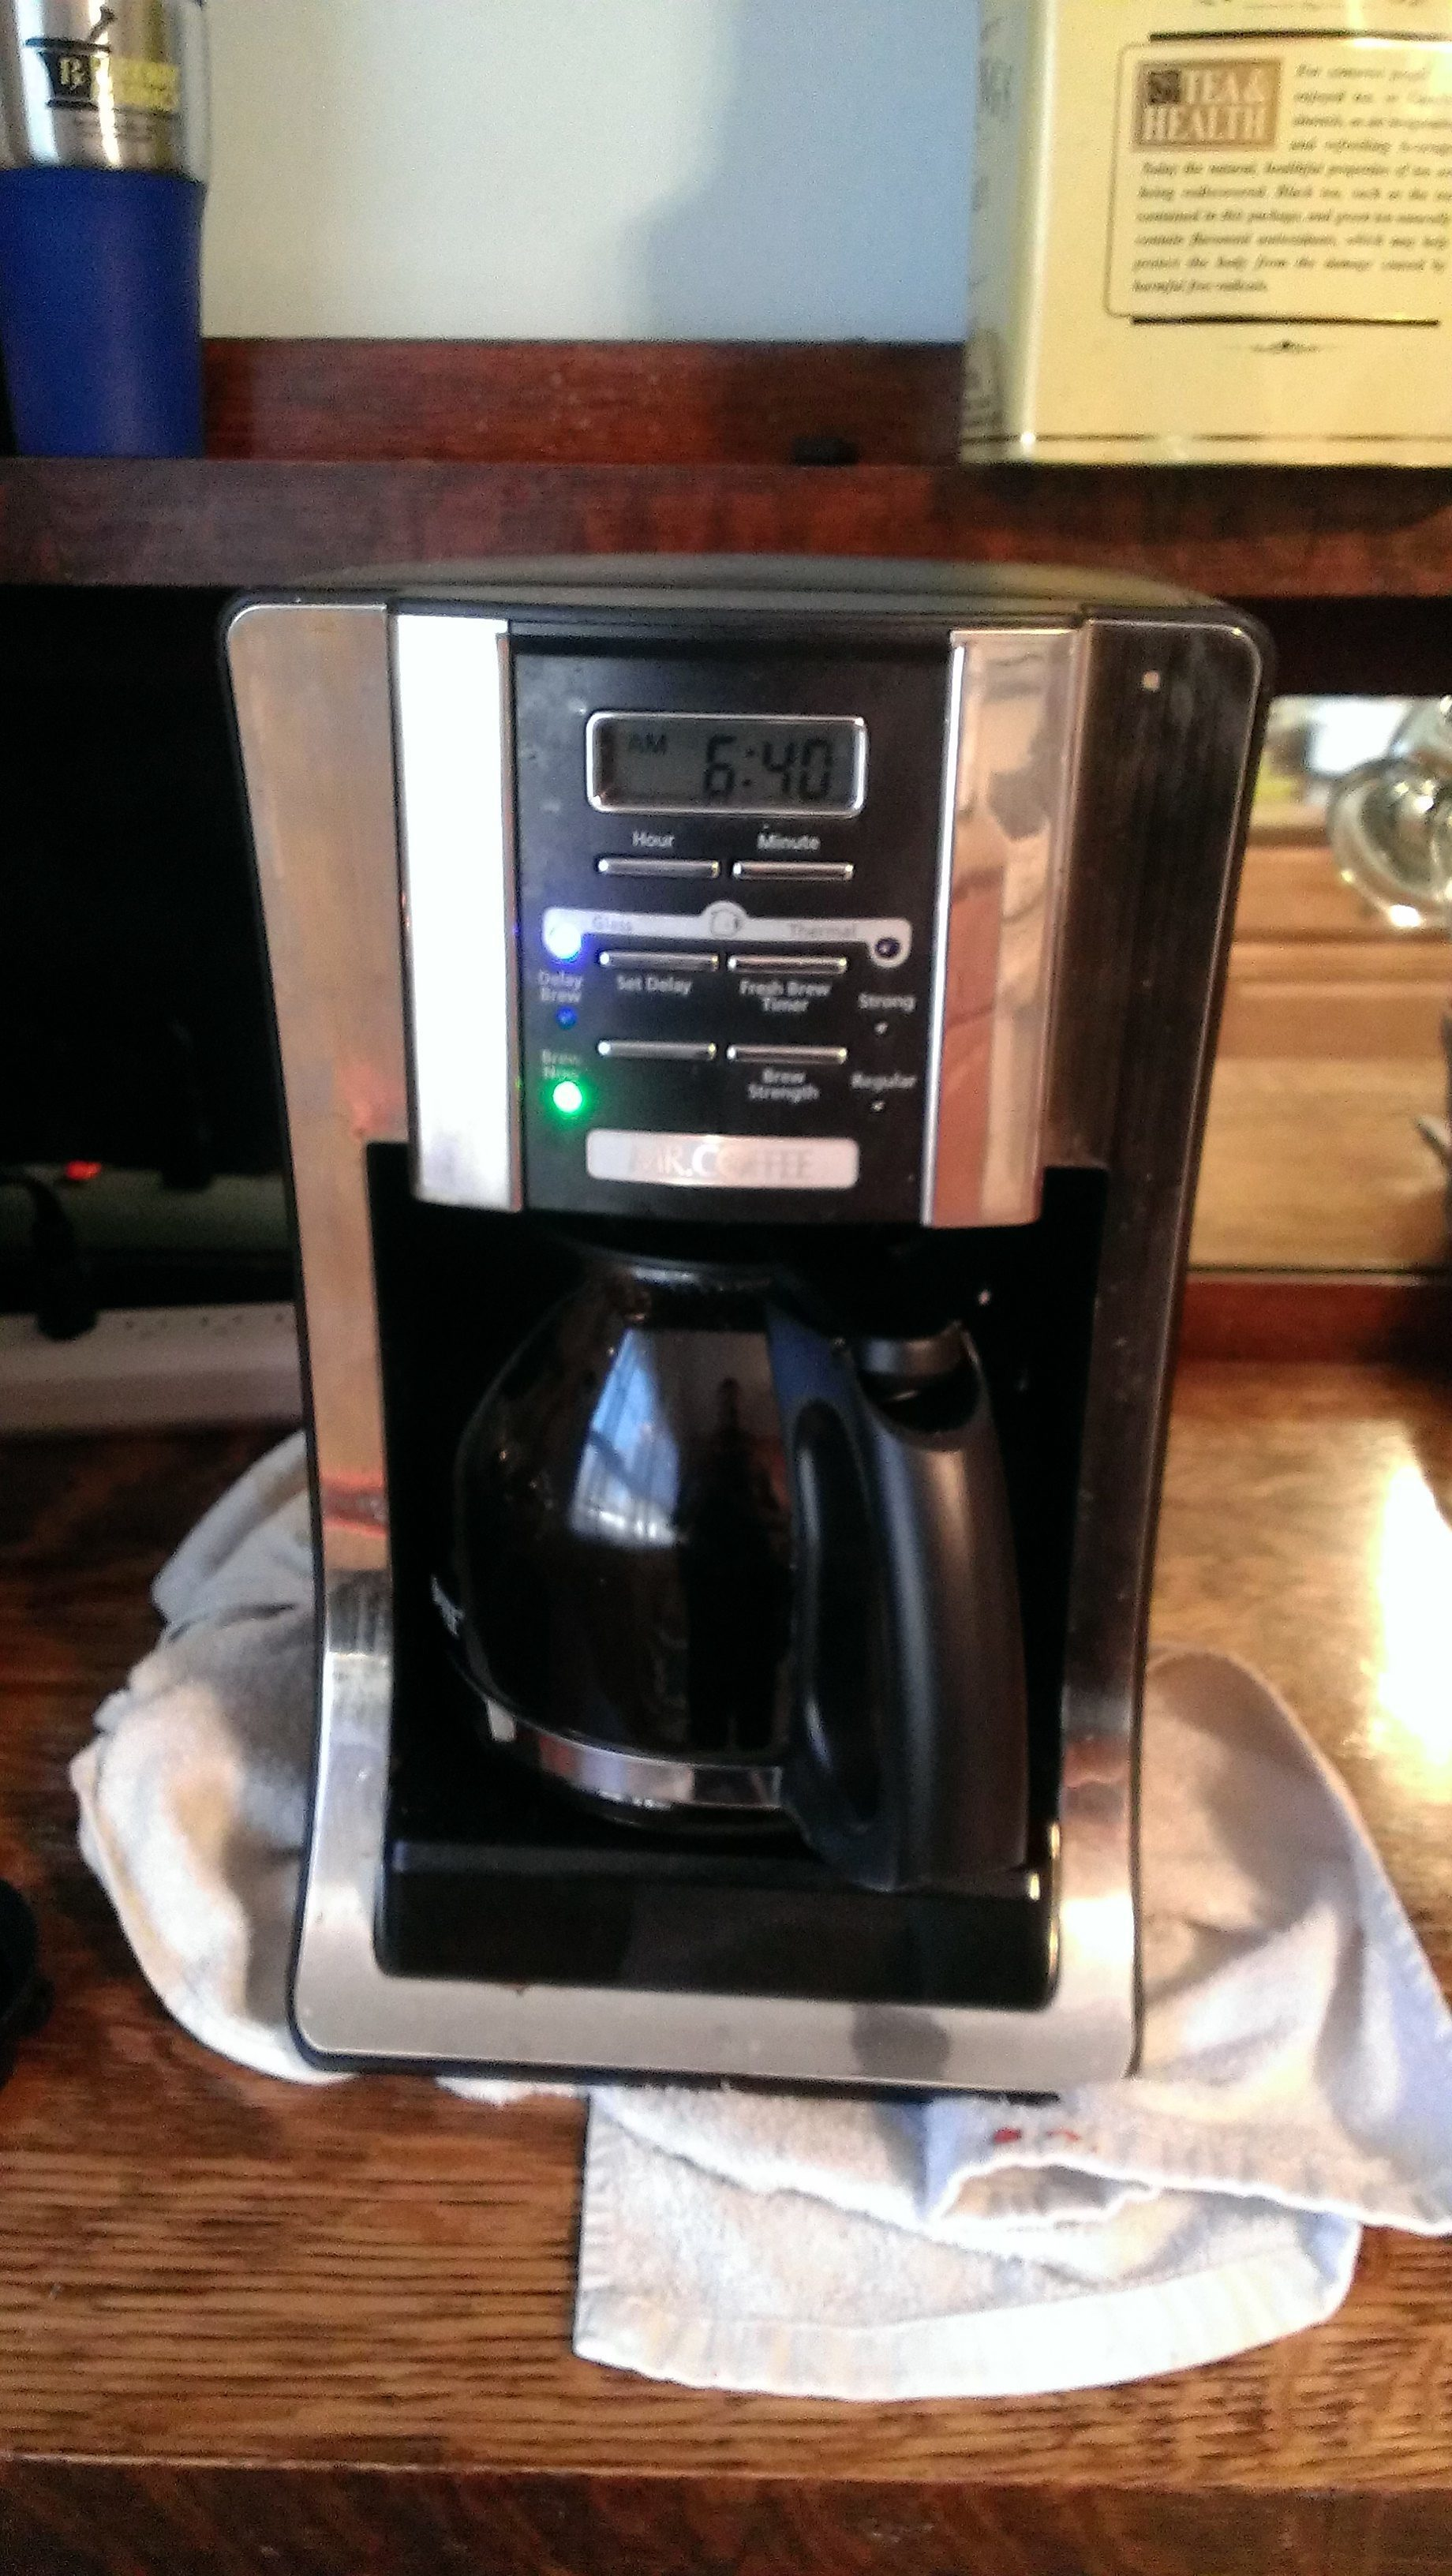 Cuisinart Coffee Maker Problems Leaking : Bunn Coffee Pot Leaking. Simple Cuisinart Coffee On Demand Coffee Maker With Bunn Coffee Pot ...